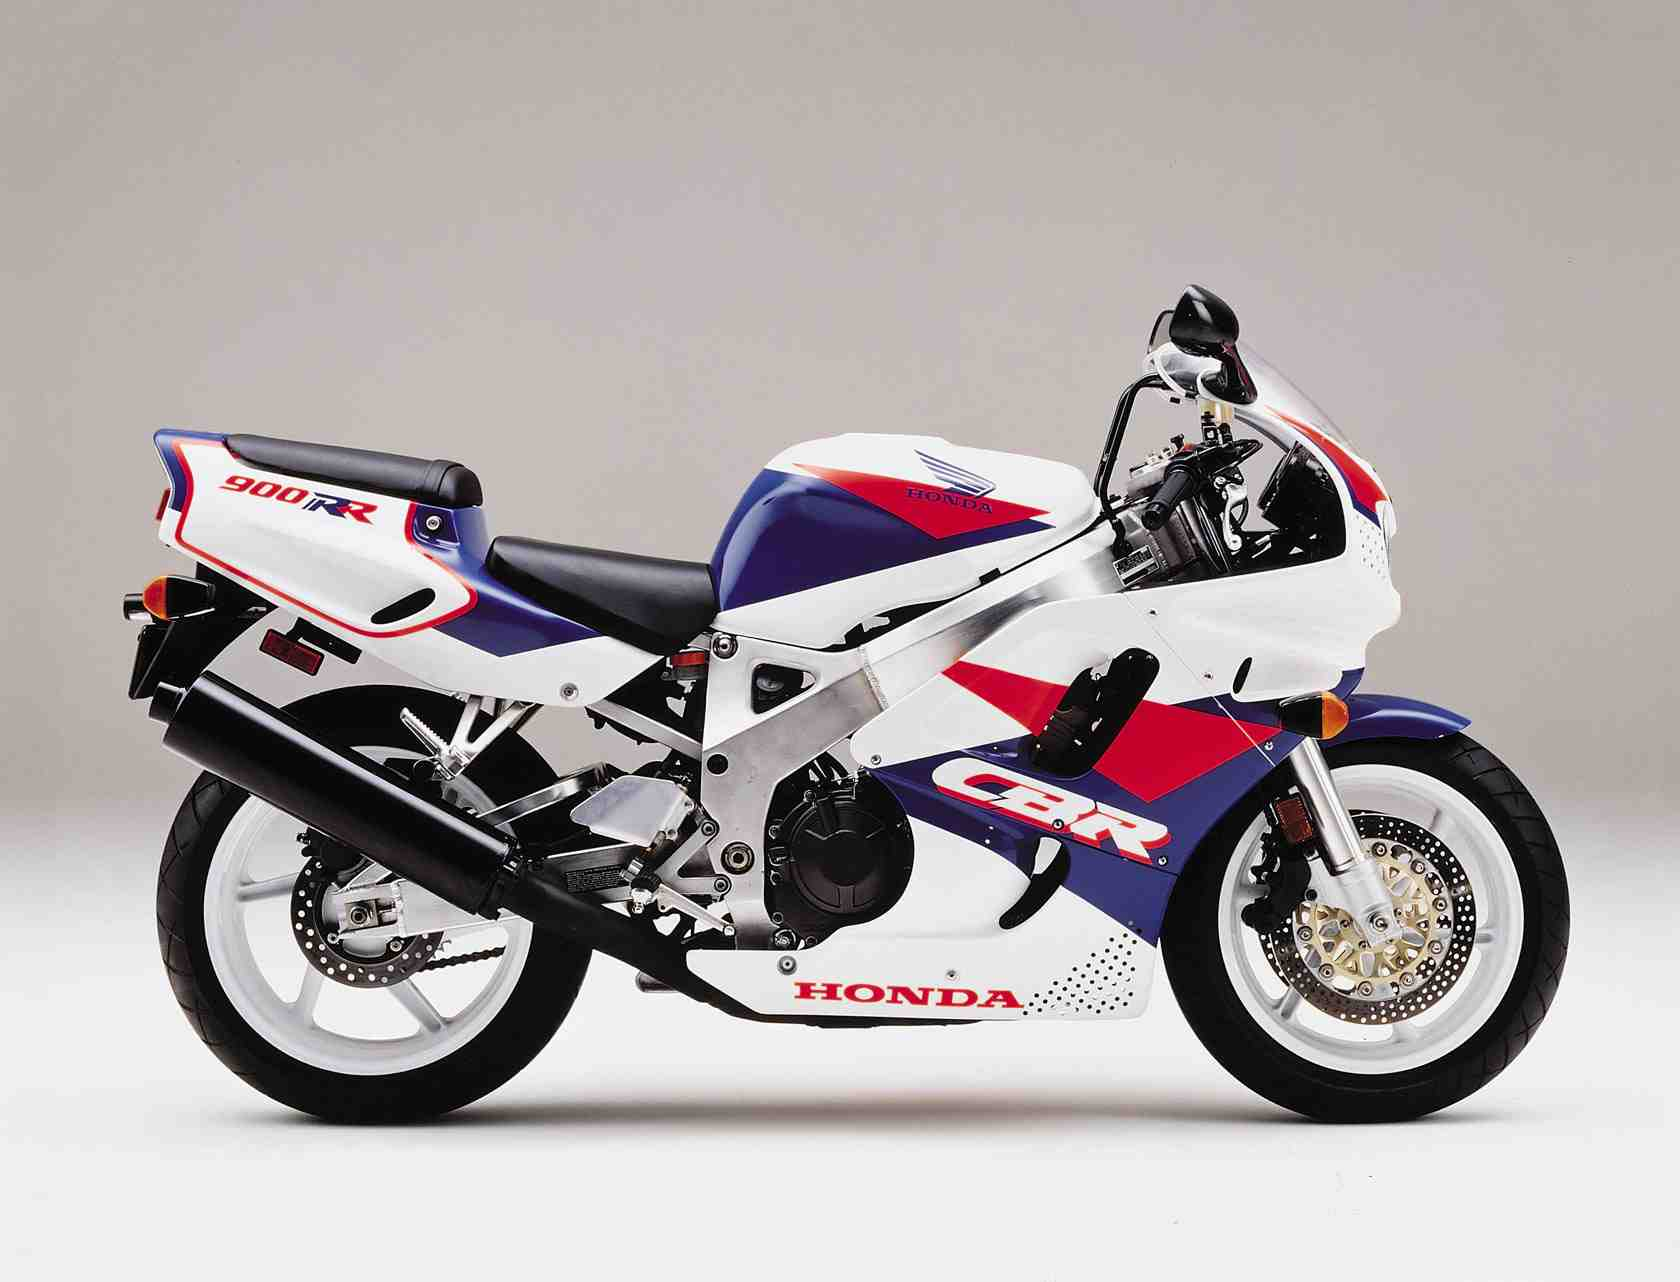 Honda CBR900RR, CBR900RR-919 Fireblade Motorcycle Workshop Service Repair  Manual 1996-1998 (